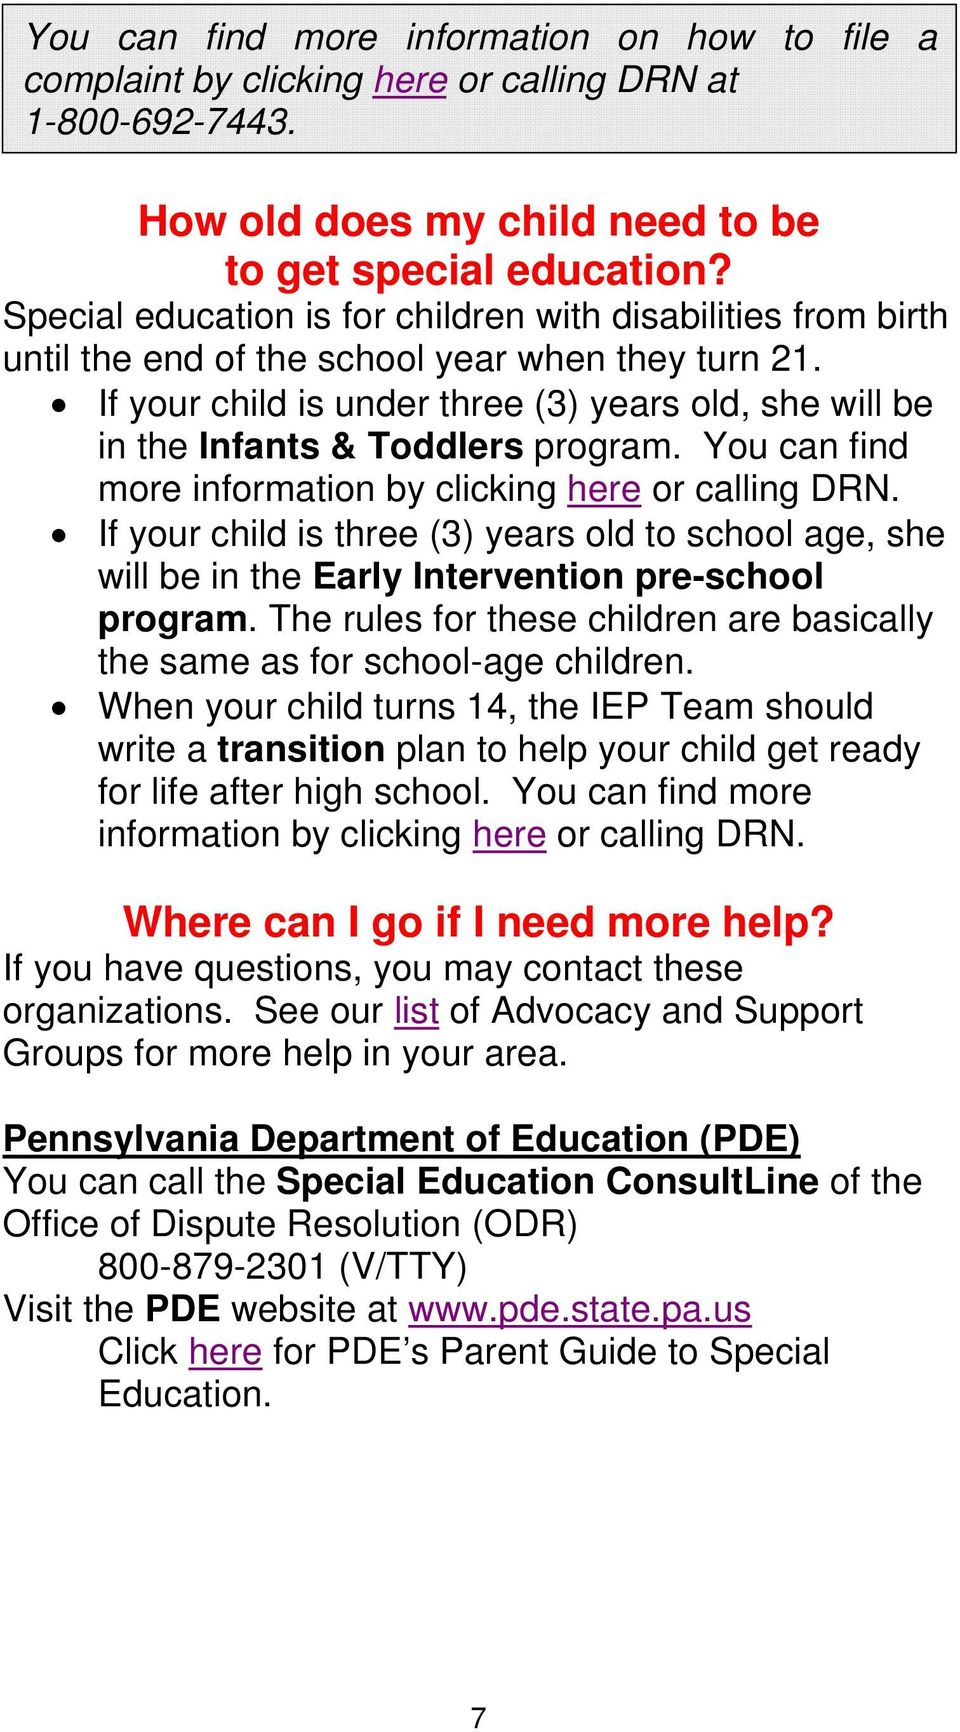 If your child is under three (3) years old, she will be in the Infants & Toddlers program. You can find more information by clicking here or calling DRN.